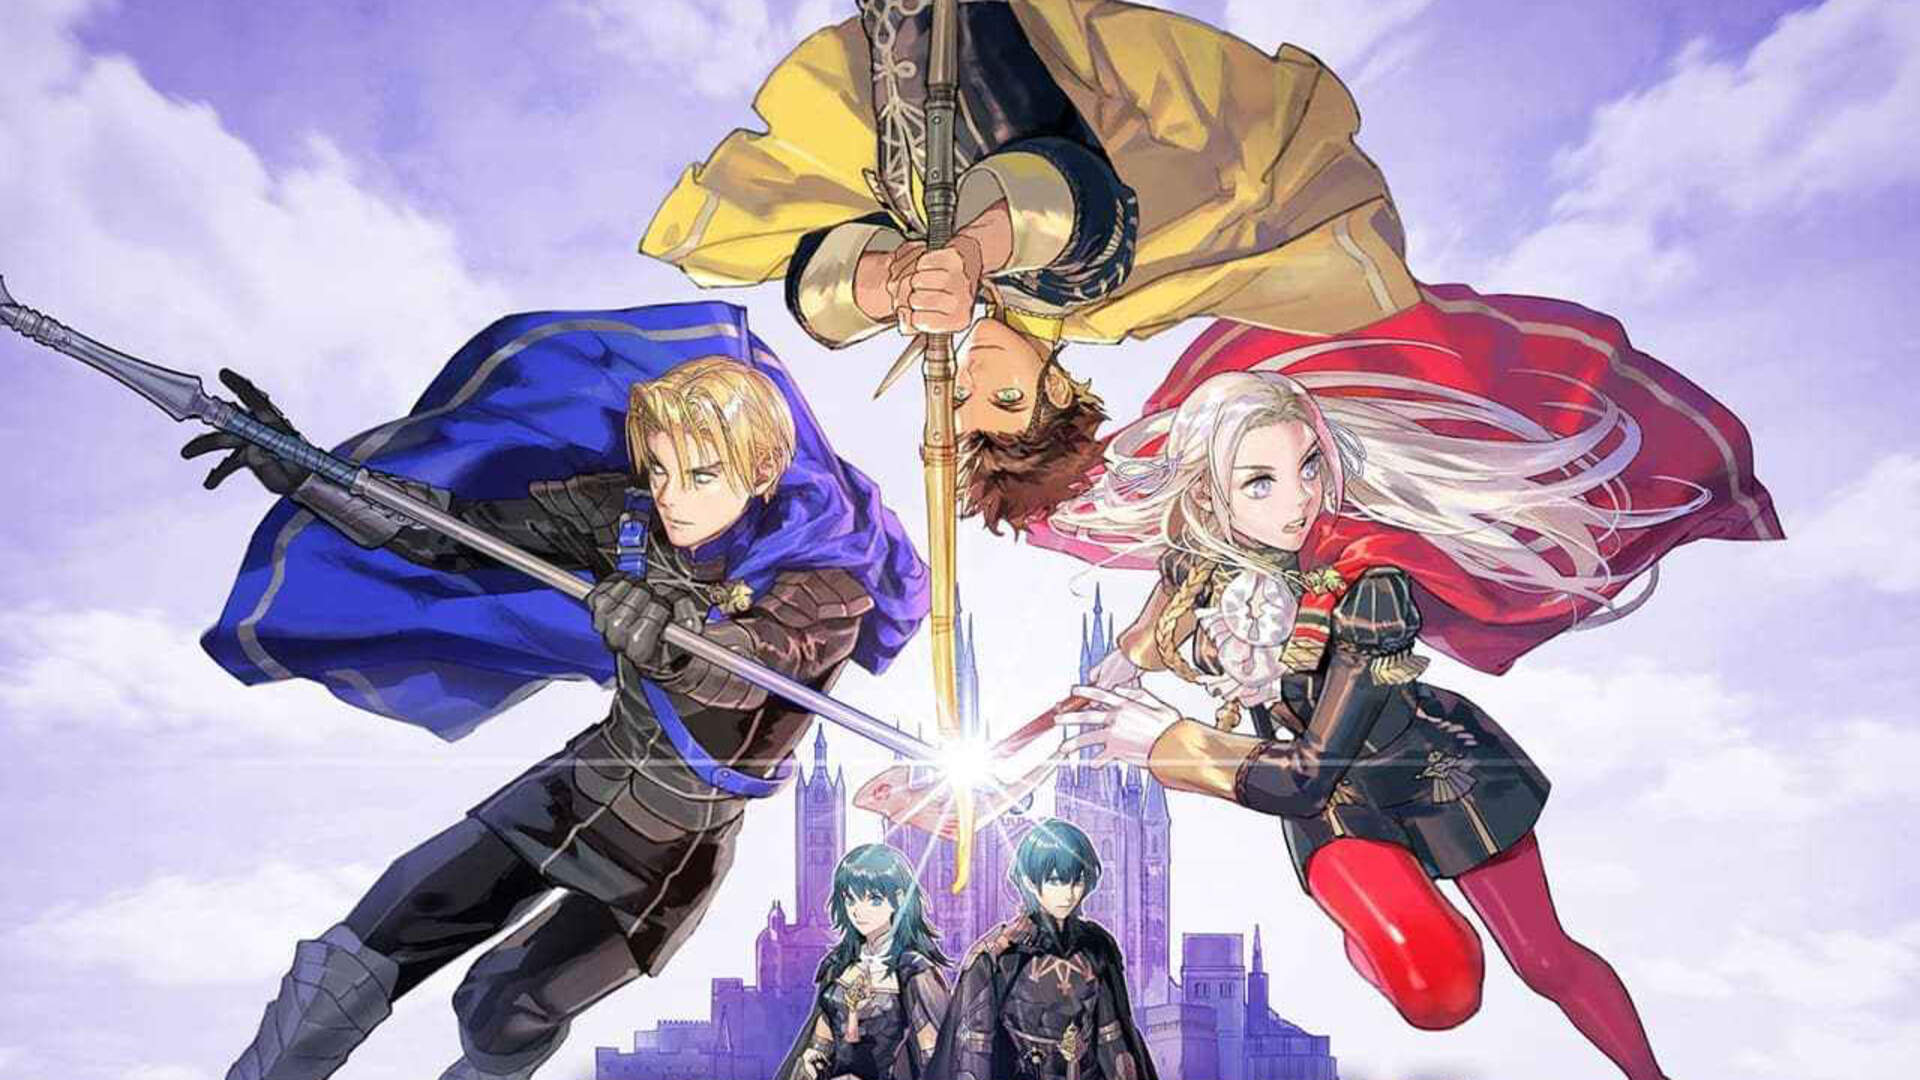 Fire Emblem: Three Houses is Excellent, But Its Excellence Comes at a Cost